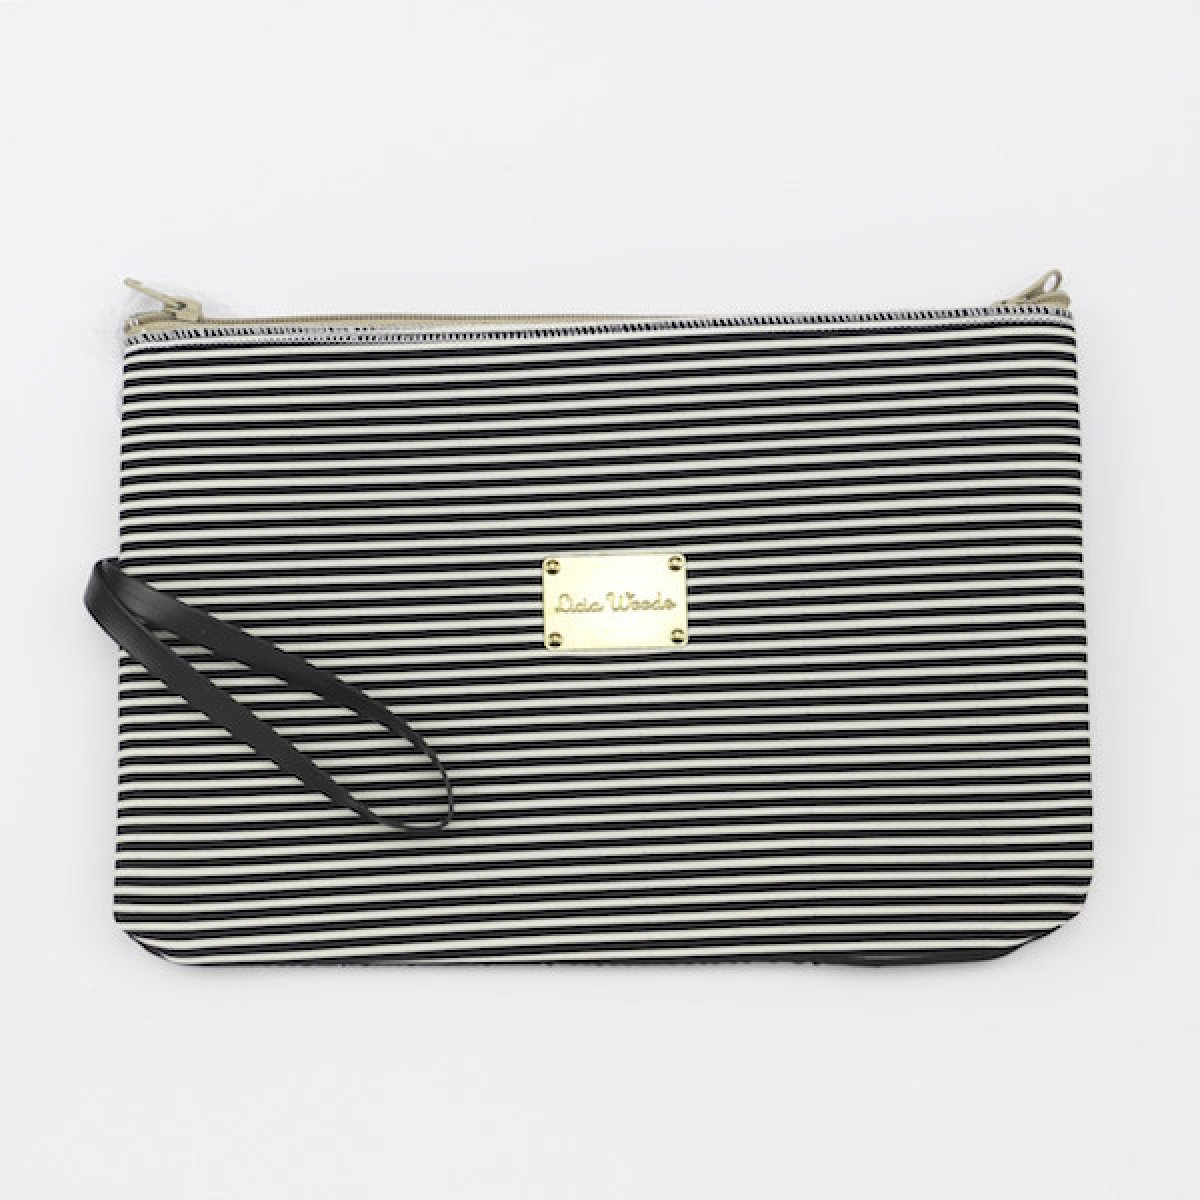 d5688cd0f525e Handcrafted clutch black and white Licia Woods